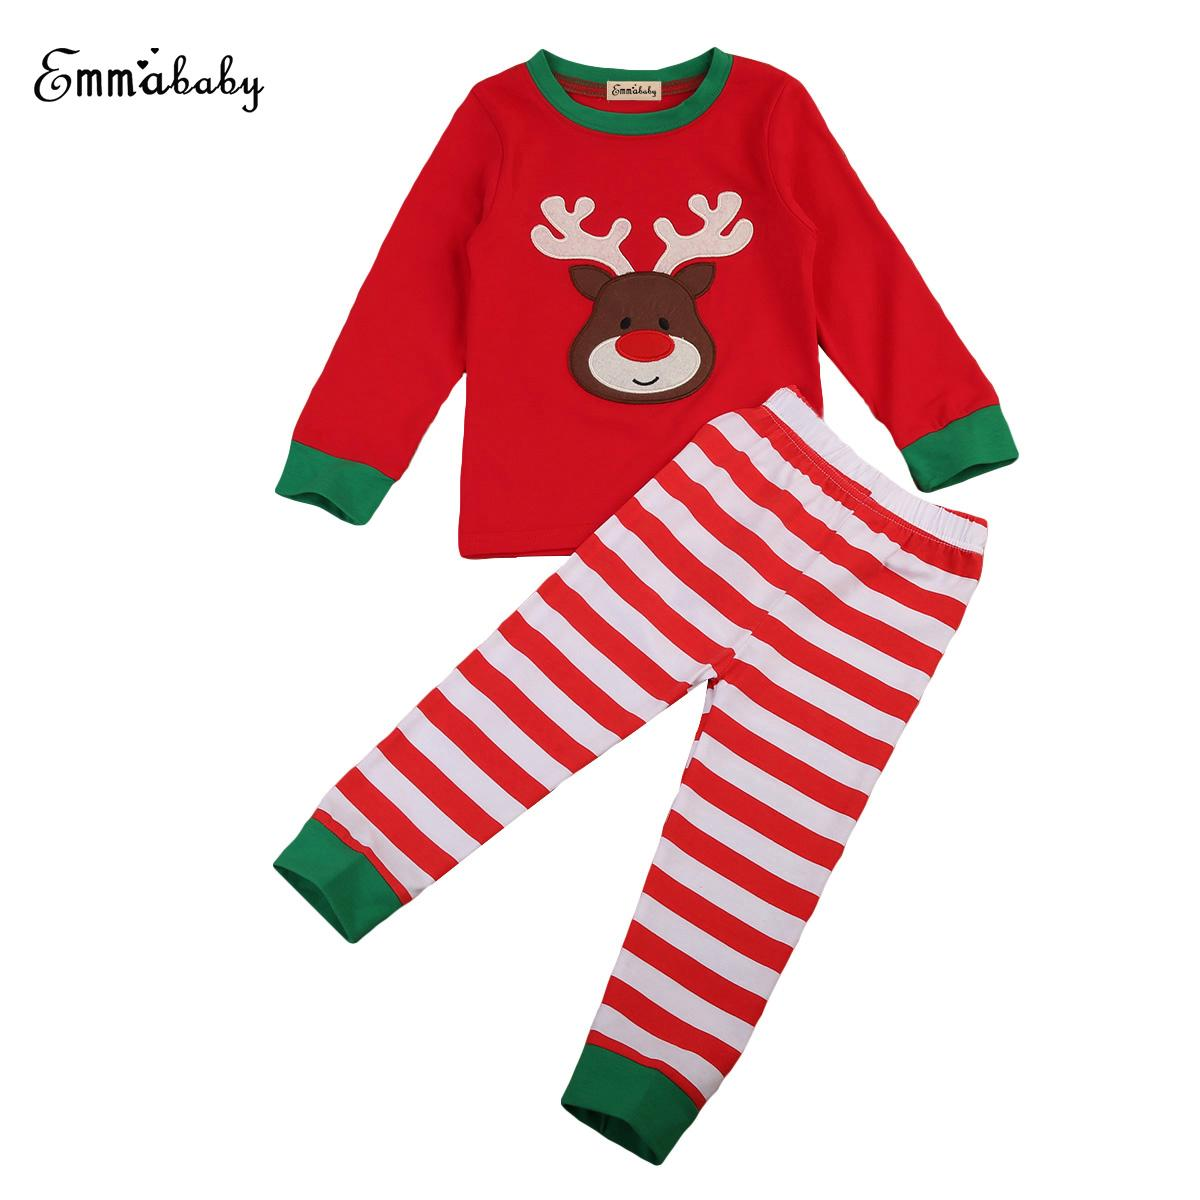 Kids Boy Girl Christmas Pajama Set Long Sleeve Tops+Striped Pant Nightwear Toddler  Baby Boys Girls Clothes 1-7Y Christmas Pajamas Kids Christmas Pajamas ... 5ab154385